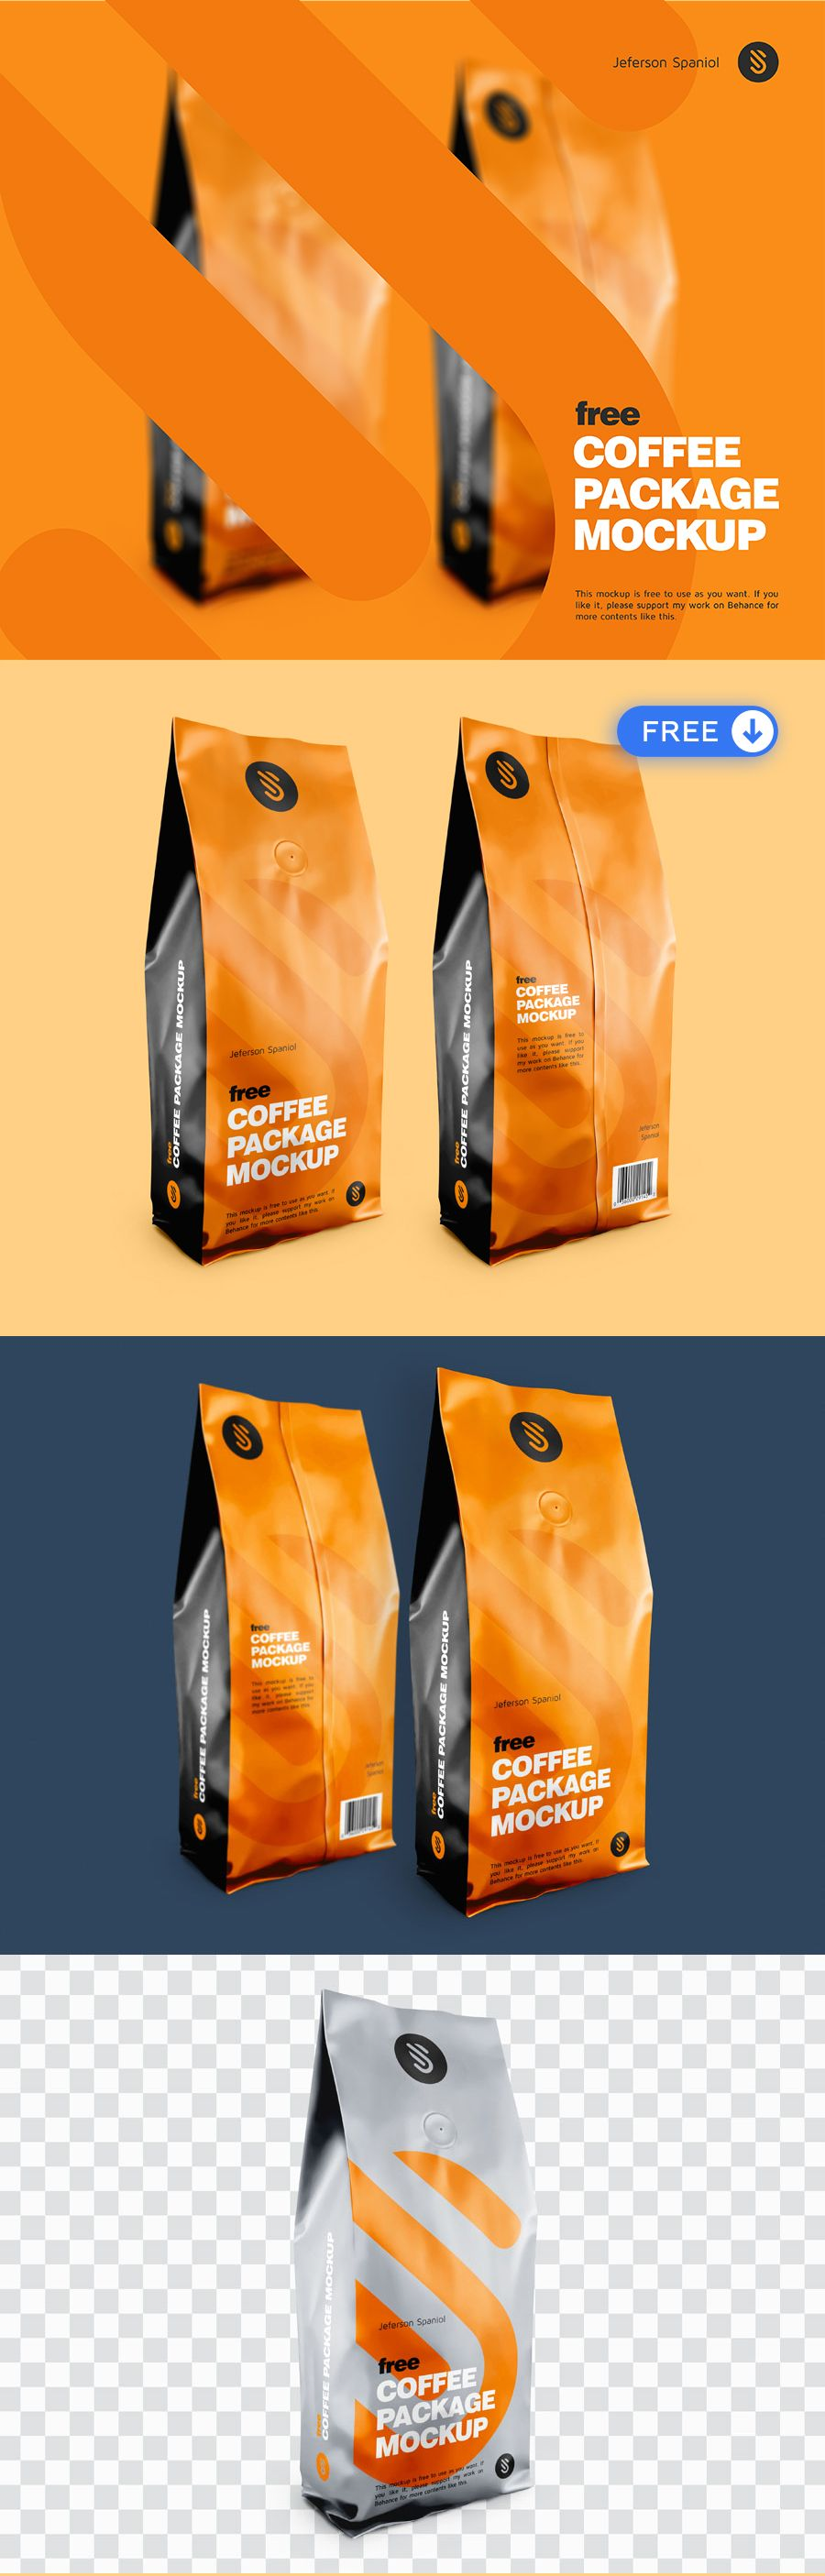 Download Free Coffee Packaging W Valve Mockup Free Coffee Free Packaging Mockup Bag Mockup